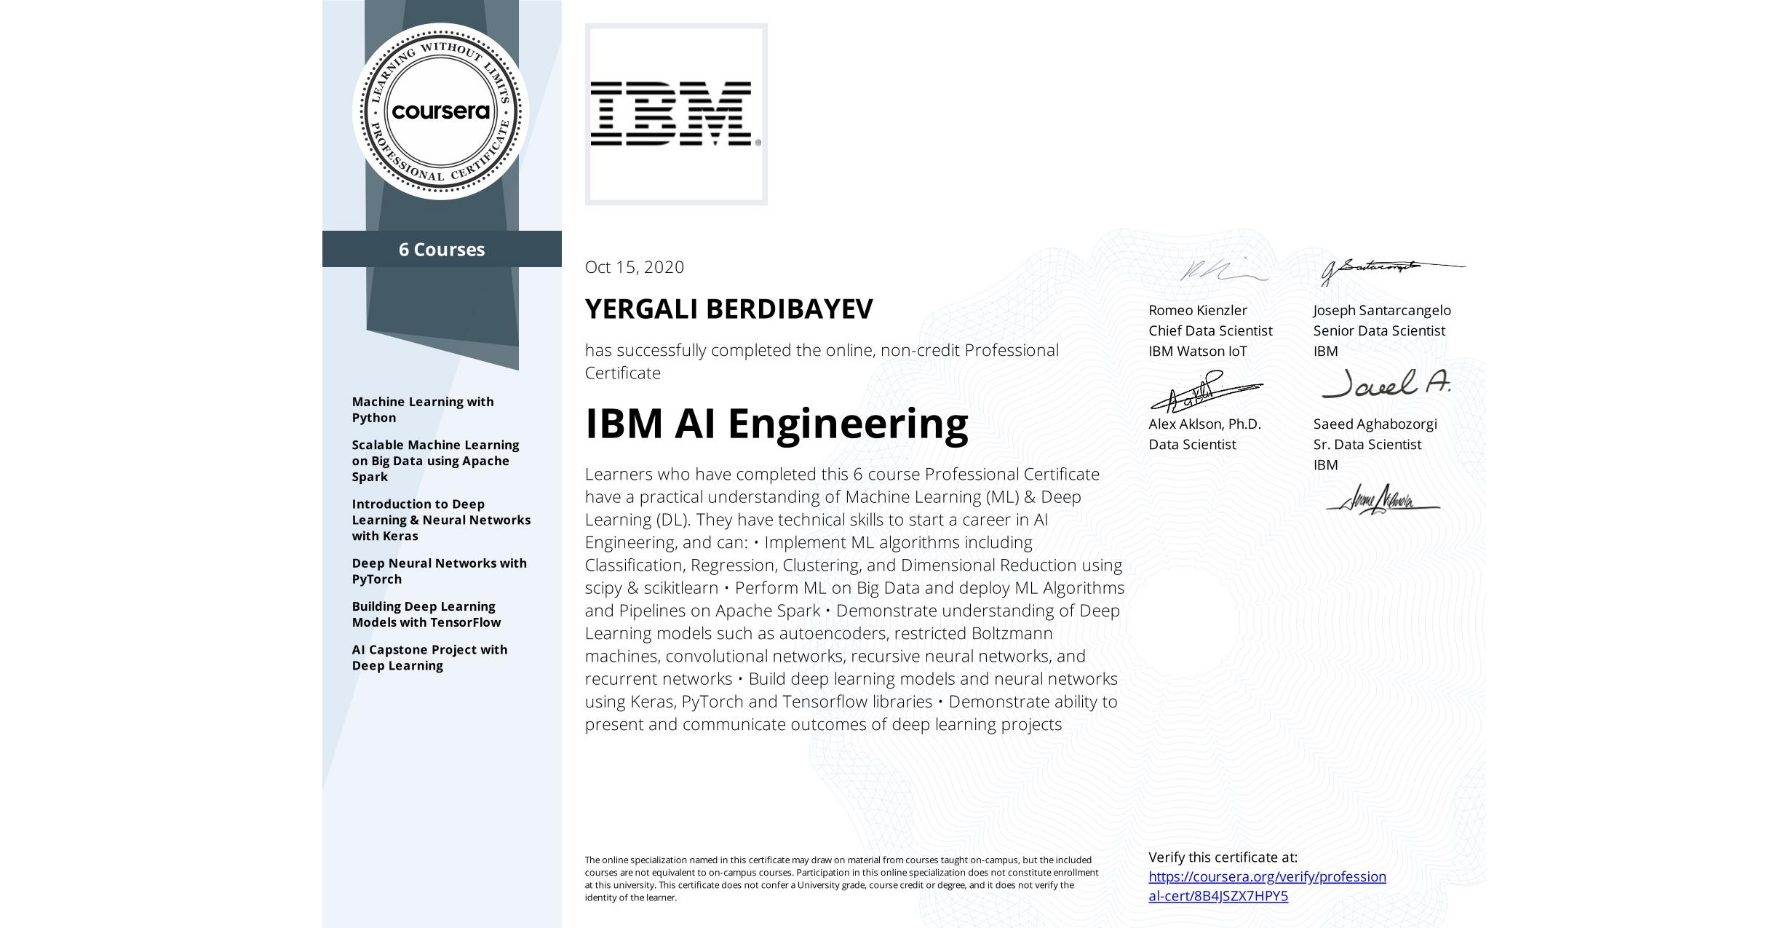 View certificate for Yergali Berdibayev, IBM AI Engineering, offered through Coursera. Learners who have completed this 6 course Professional Certificate have a practical understanding of Machine Learning (ML) & Deep Learning (DL). They have technical skills to start a career in AI Engineering, and can: •	Implement ML algorithms including Classification, Regression, Clustering, and Dimensional Reduction using scipy & scikitlearn •	Perform ML on Big Data and deploy ML Algorithms and Pipelines on Apache Spark •	Demonstrate understanding of Deep Learning models such as autoencoders, restricted Boltzmann machines,  convolutional networks, recursive neural networks, and recurrent networks •	Build deep learning models and neural networks using Keras, PyTorch and Tensorflow libraries •	Demonstrate ability to present and communicate outcomes of deep learning projects